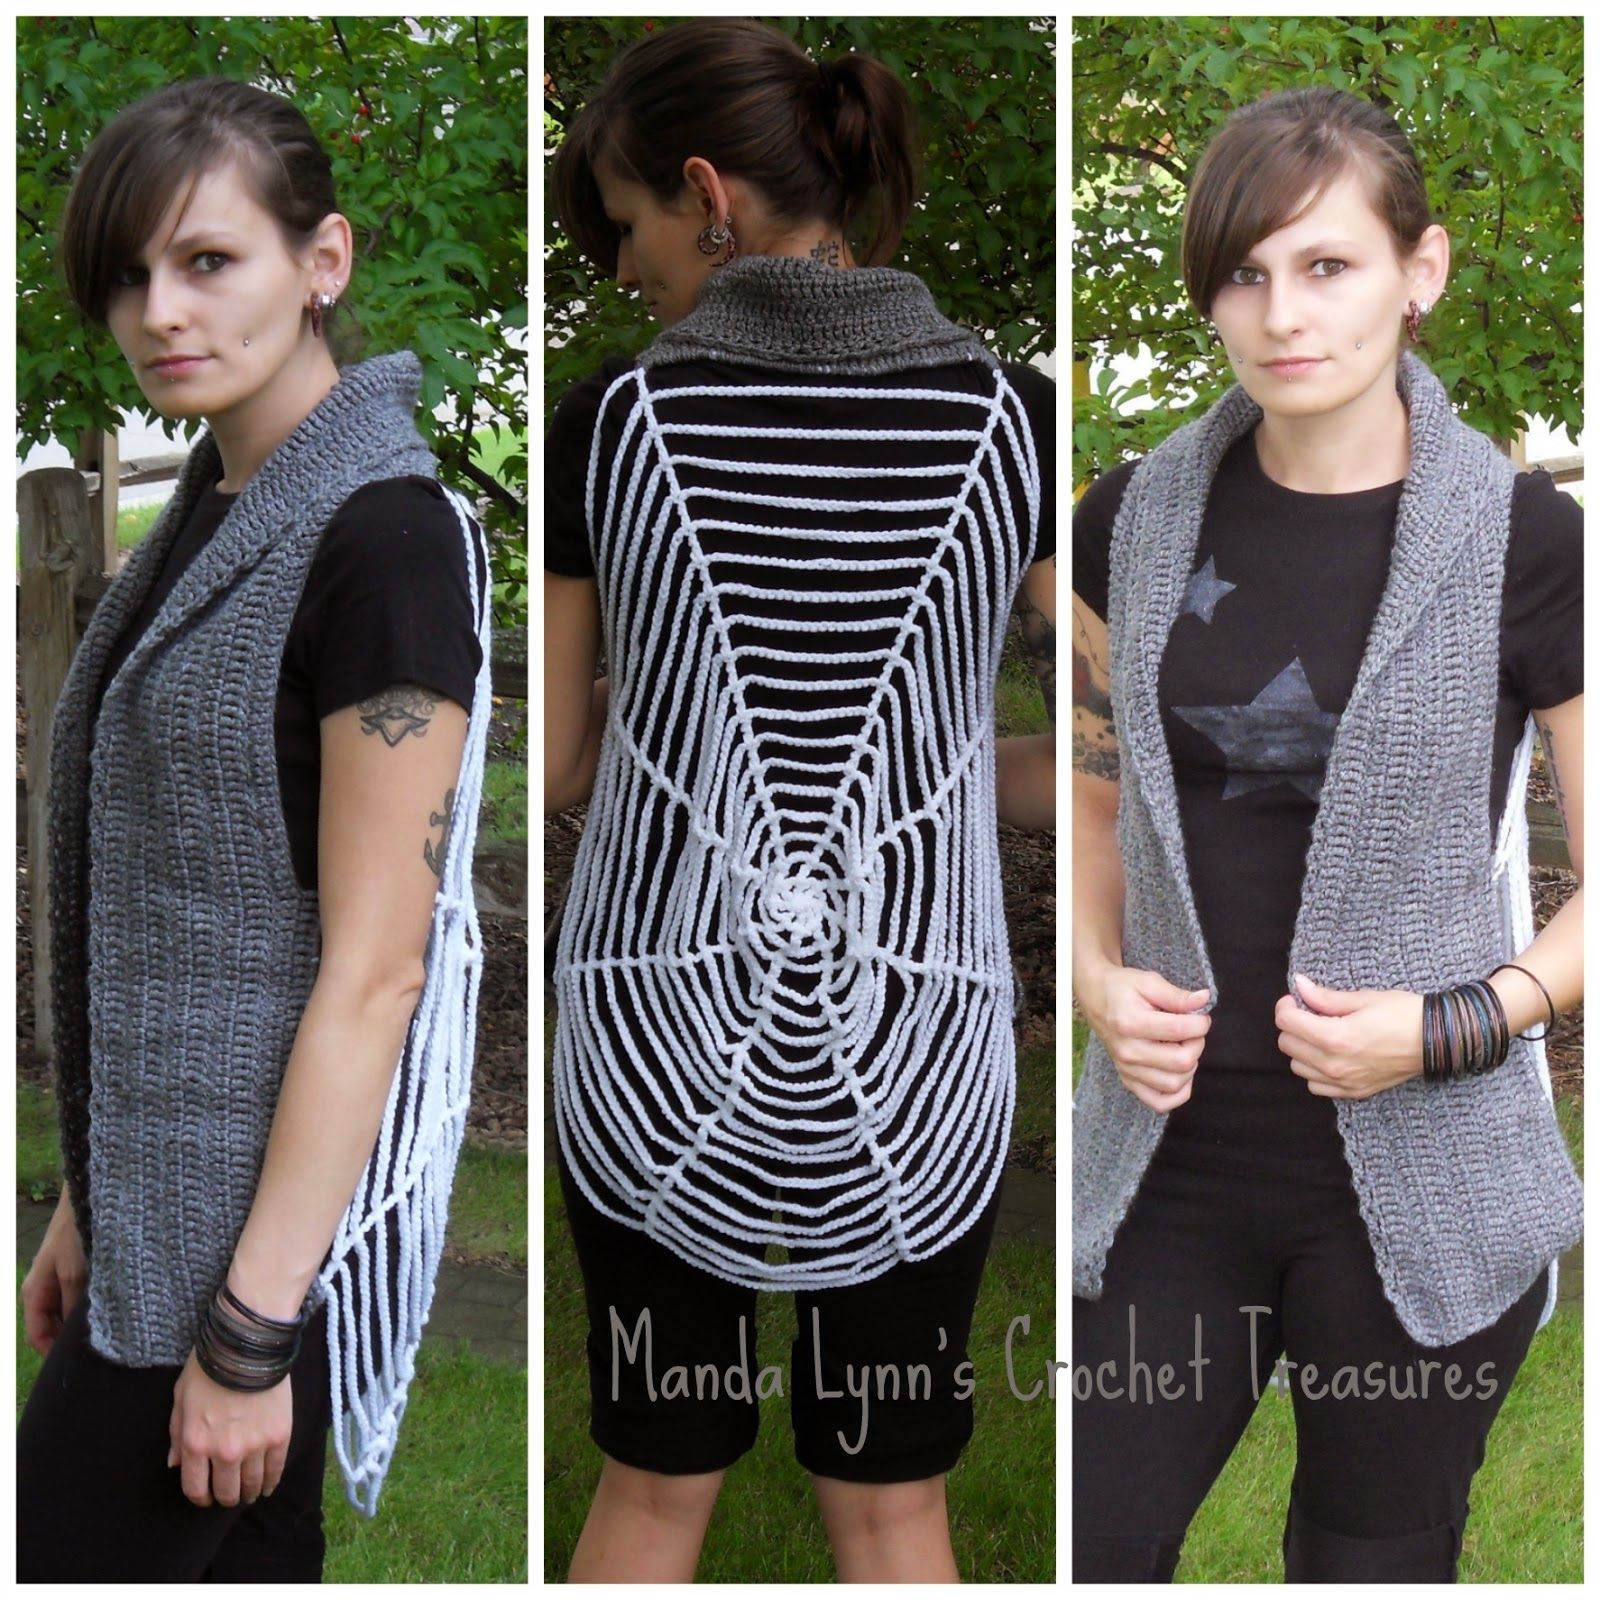 Mandalynns crochet treasures spiderweb vest free pattern mandalynns crochet treasures spiderweb vest free pattern bankloansurffo Image collections